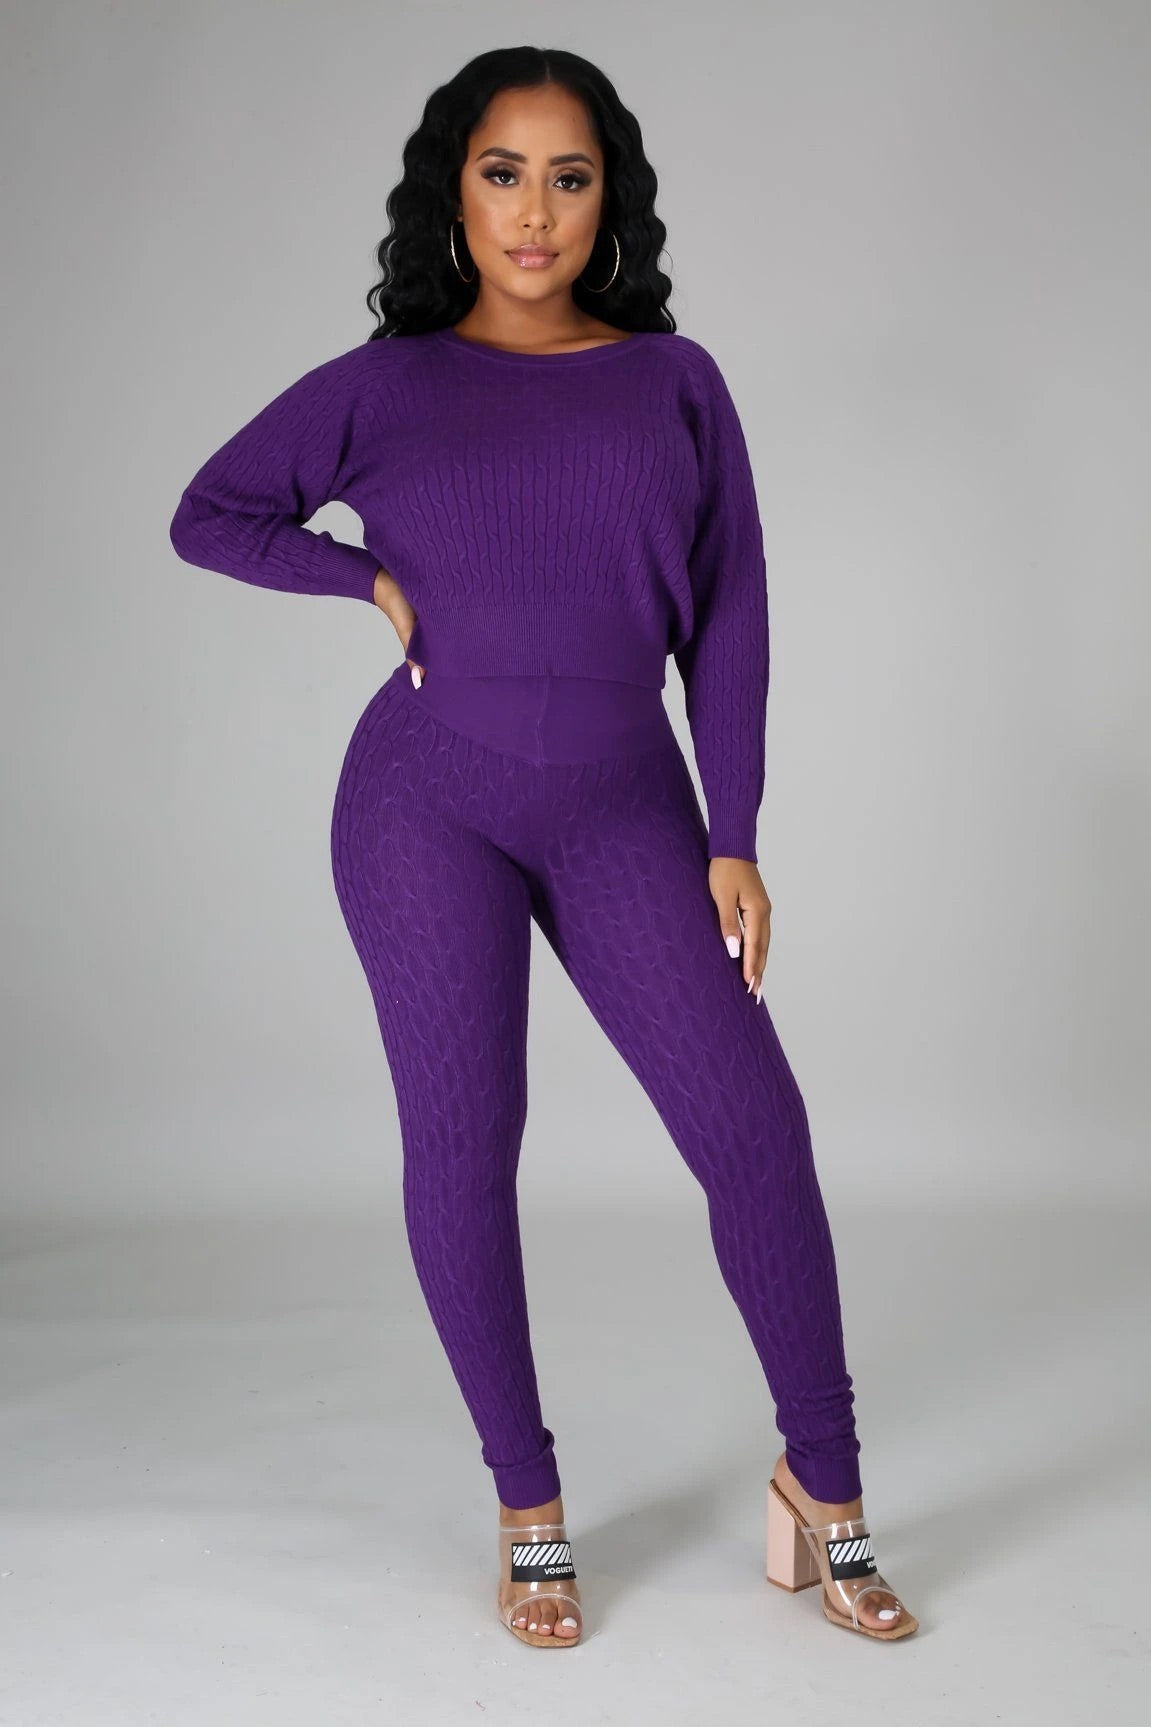 Amanda Legging Set - Purple